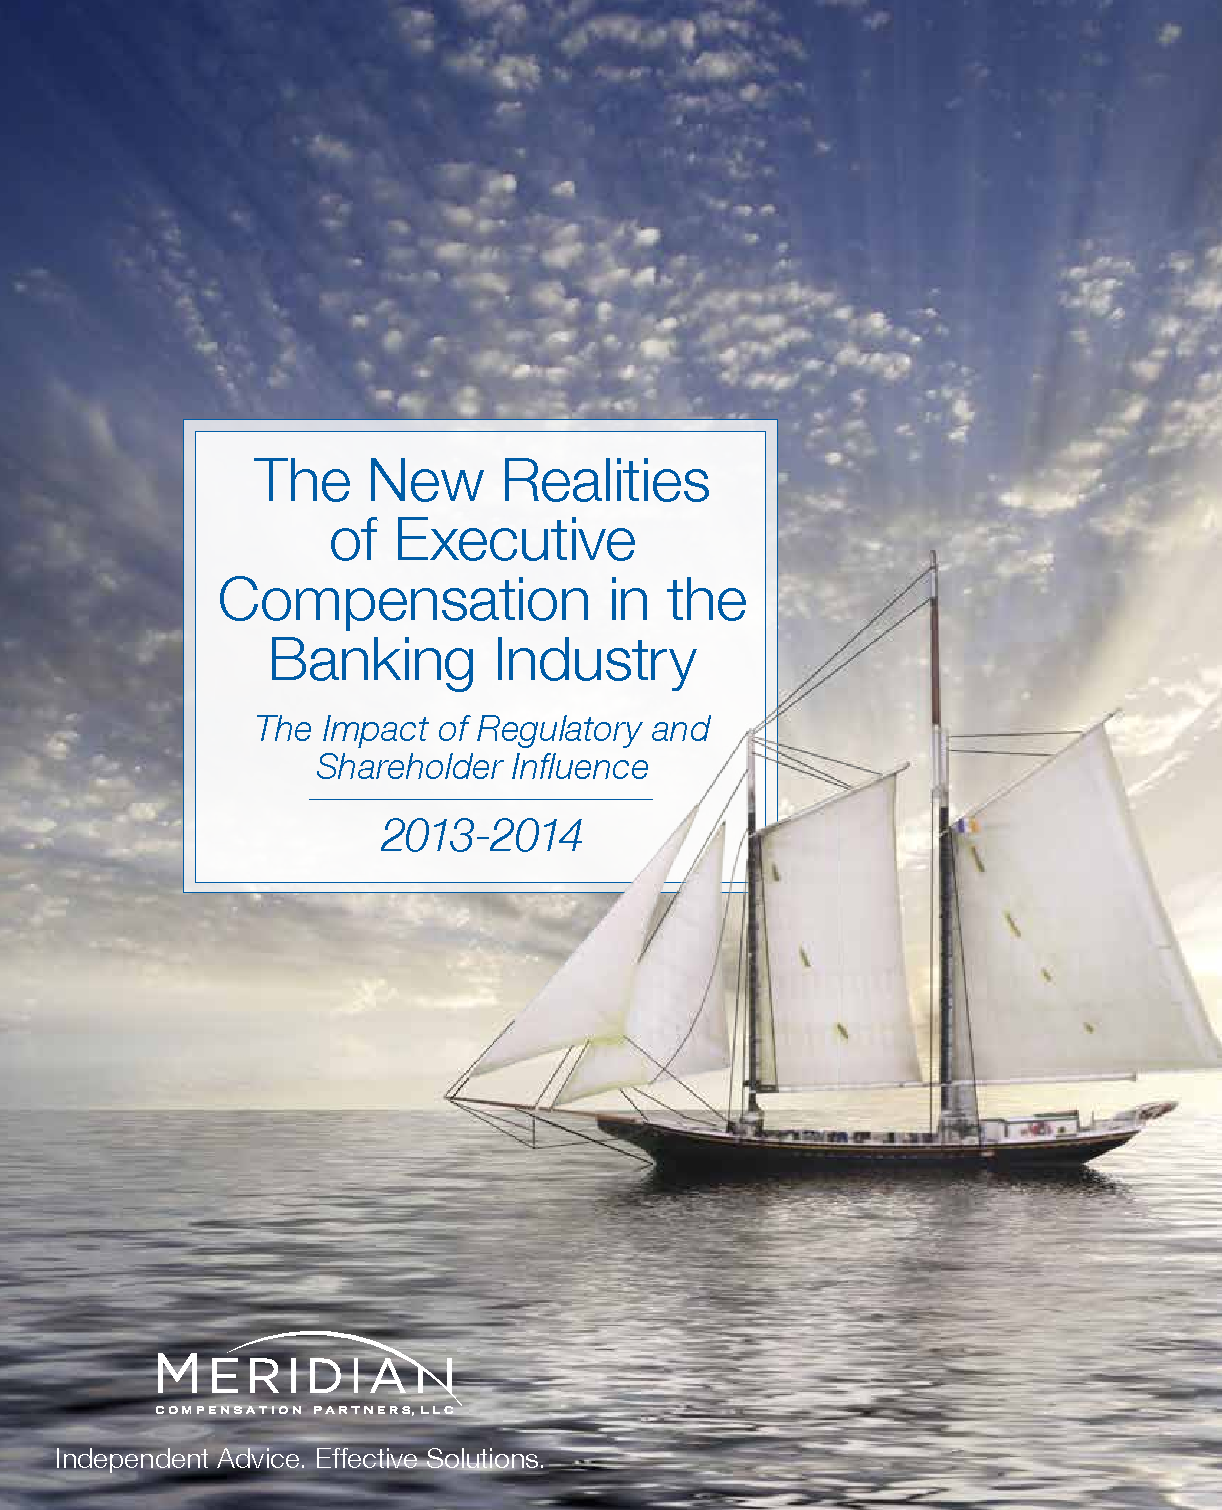 New Realities of Executive Compensation in the Banking Industry (PDF)